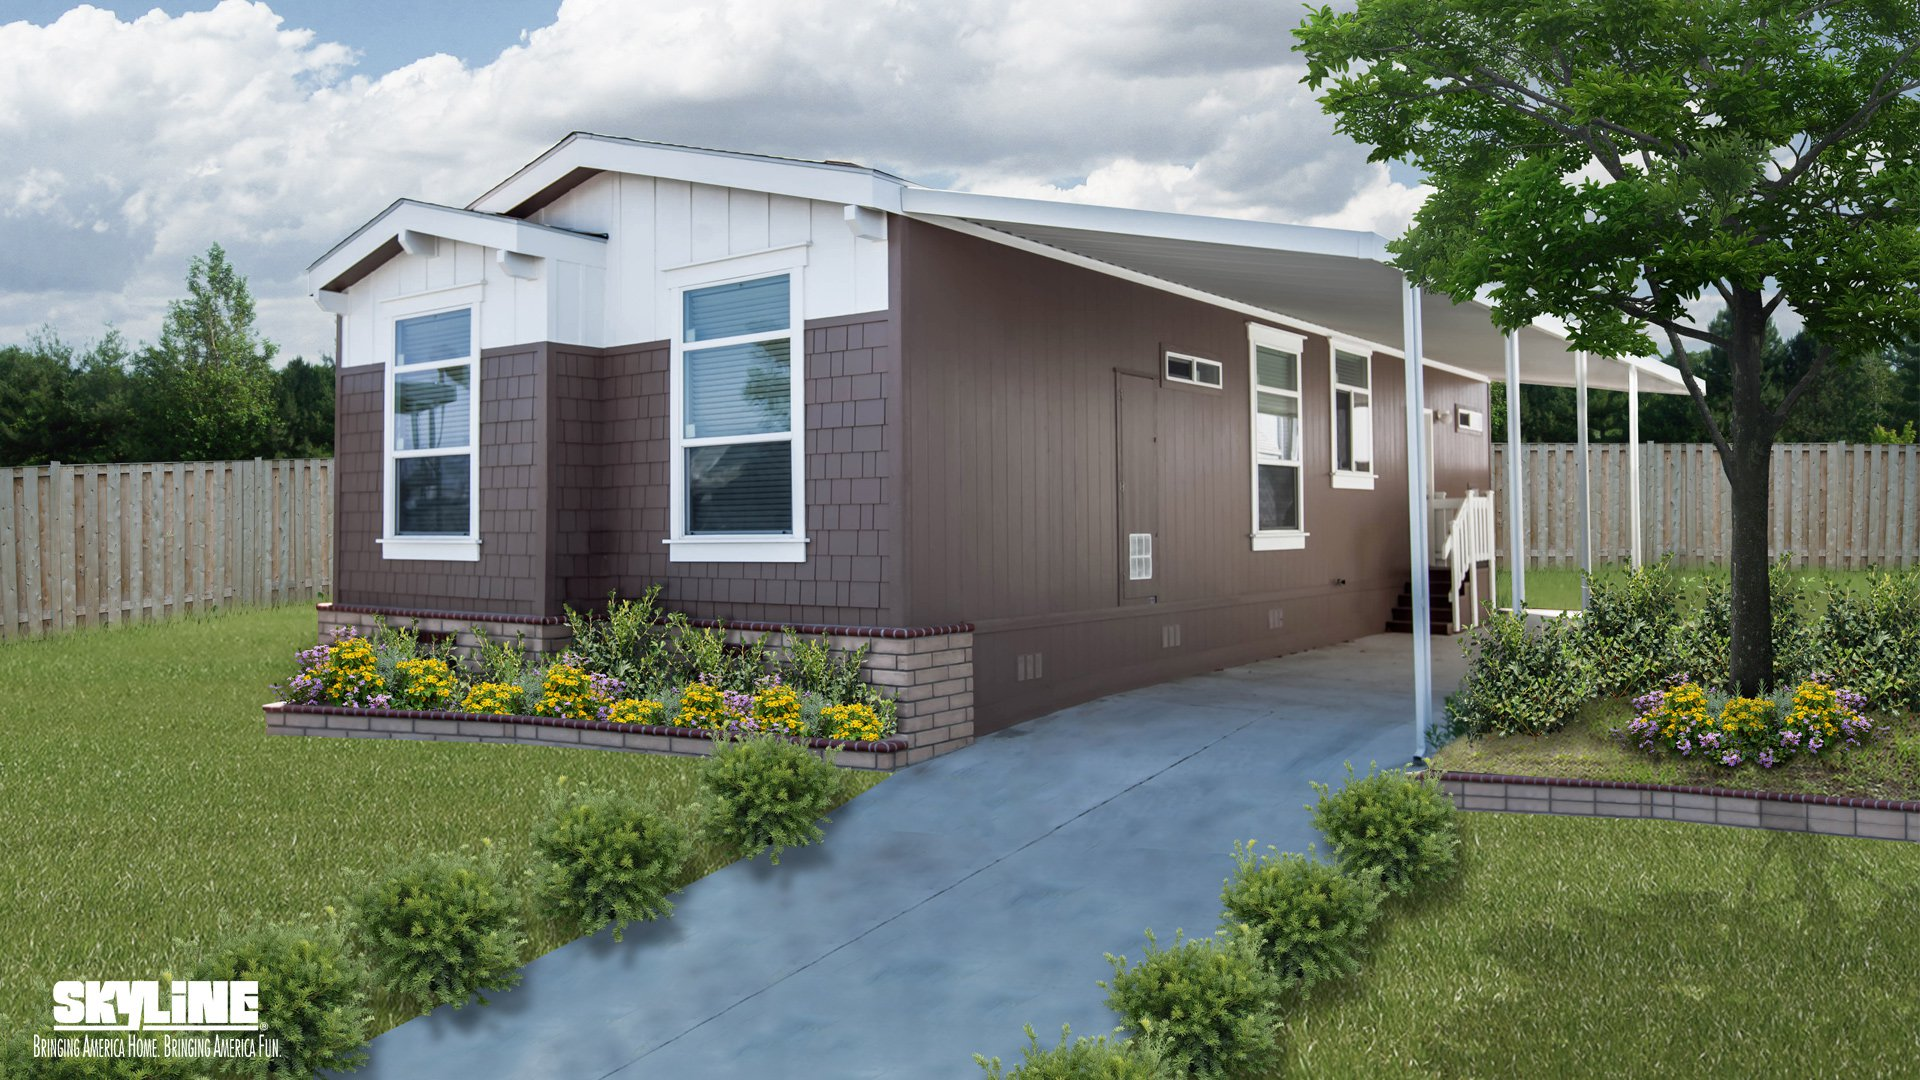 manufactured homes inc Pleasant valley designs, builds and sells quality modular homes in the northeast usa from virginia to maine.